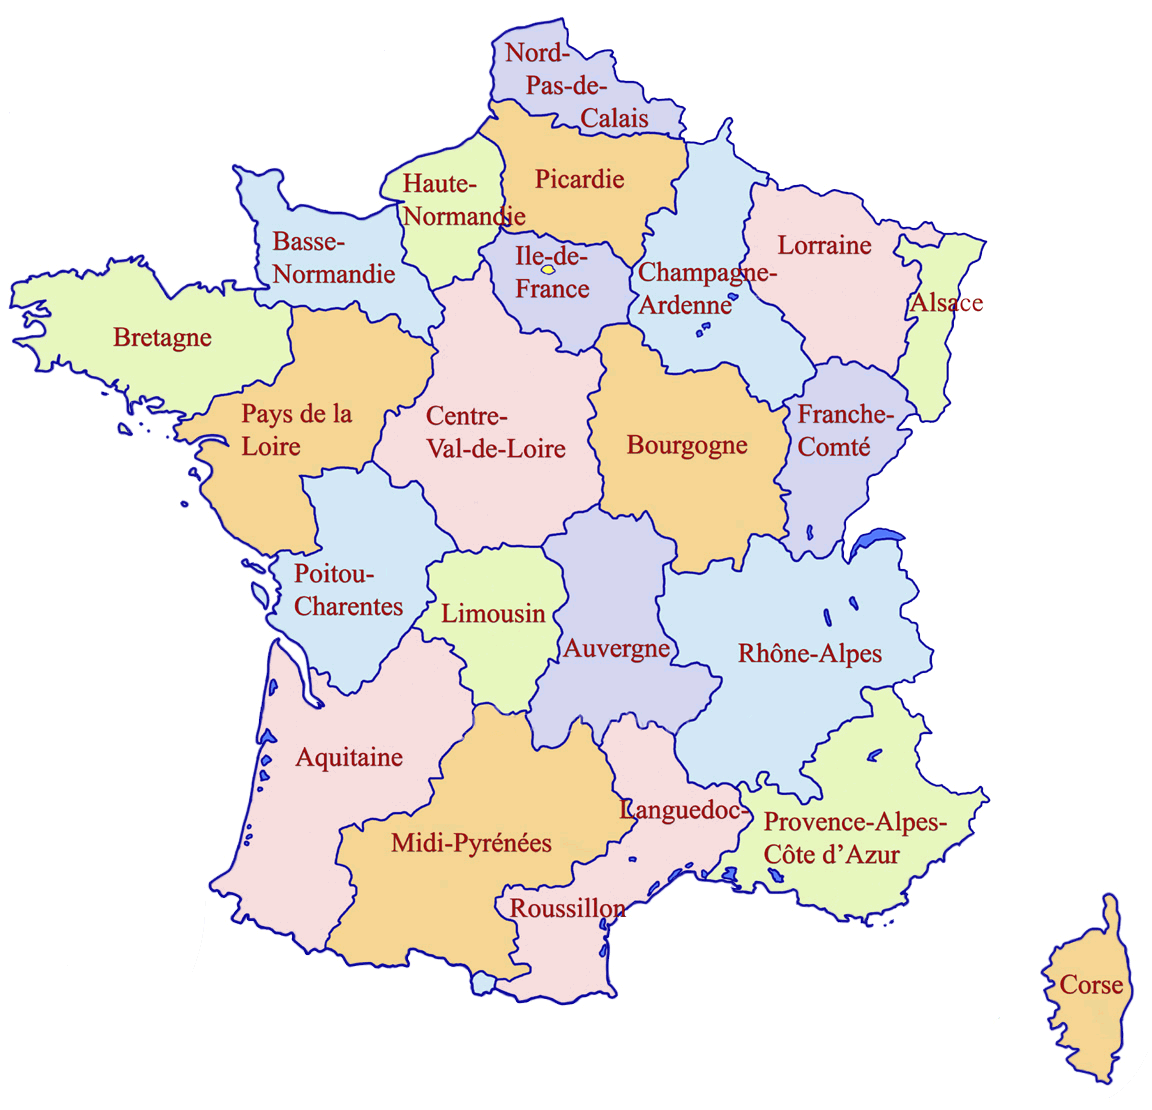 Map Of France With Regions.France Regions Map Mapsof Net